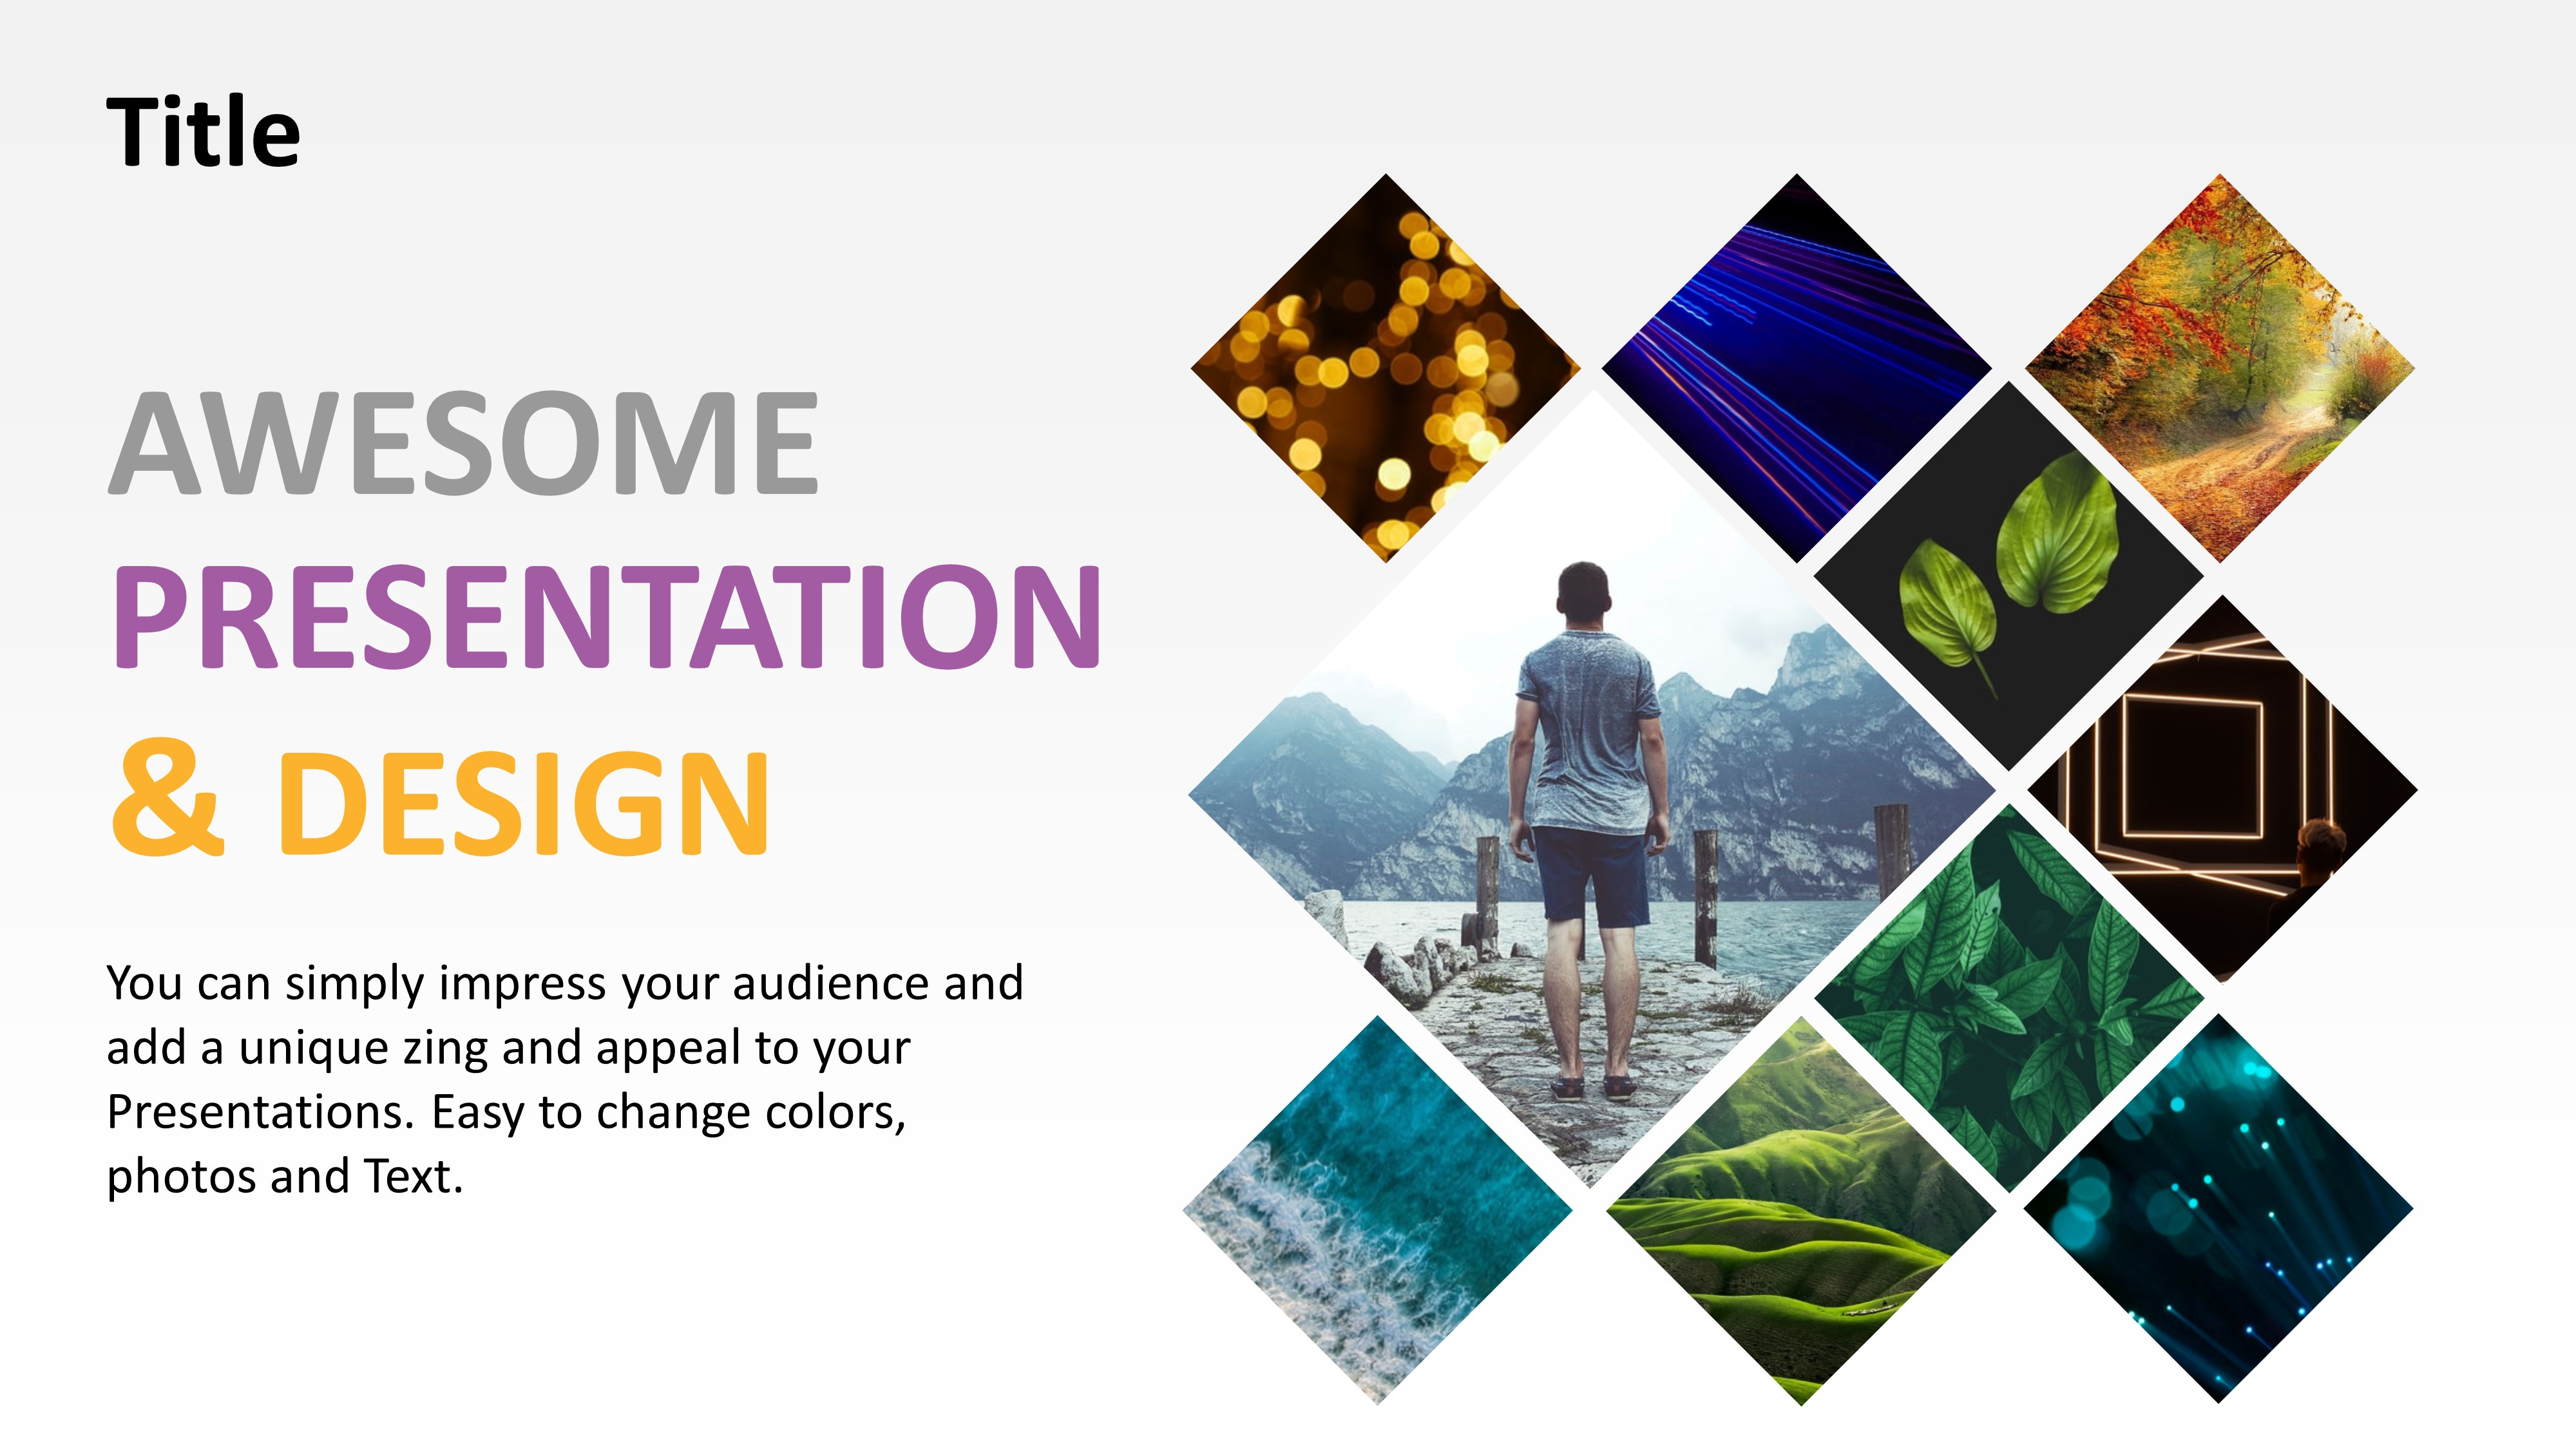 Animated Templates of Awesome PowerPoint